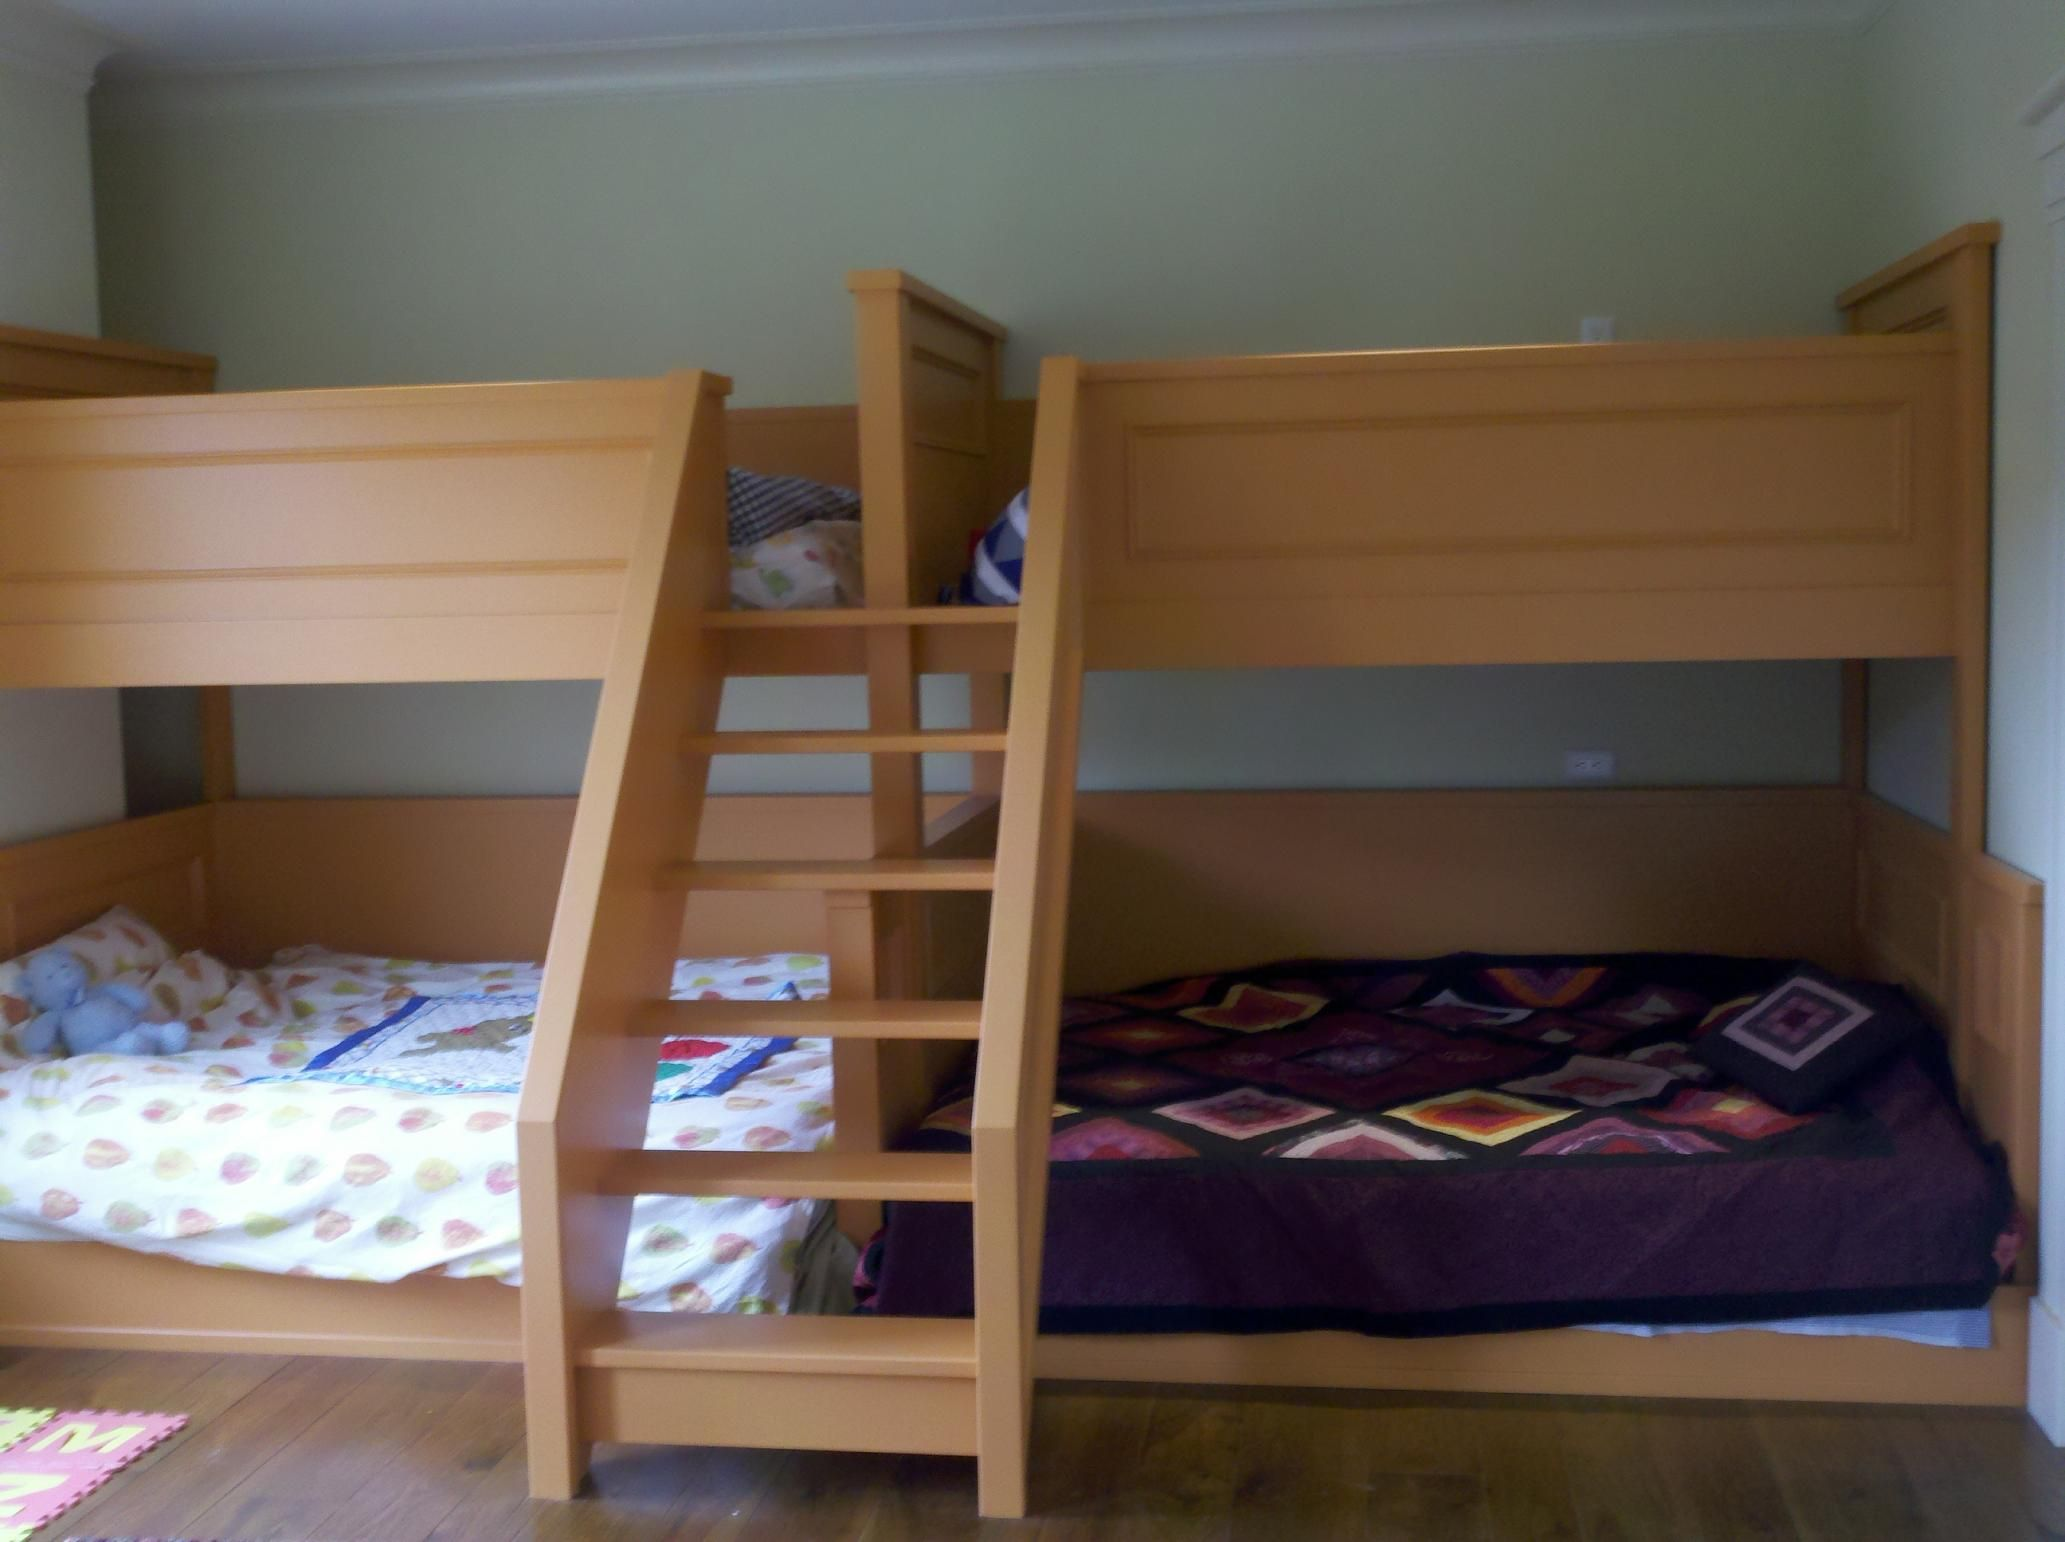 pair of quad bunk beds20110228_102005_796.jpg Bunk